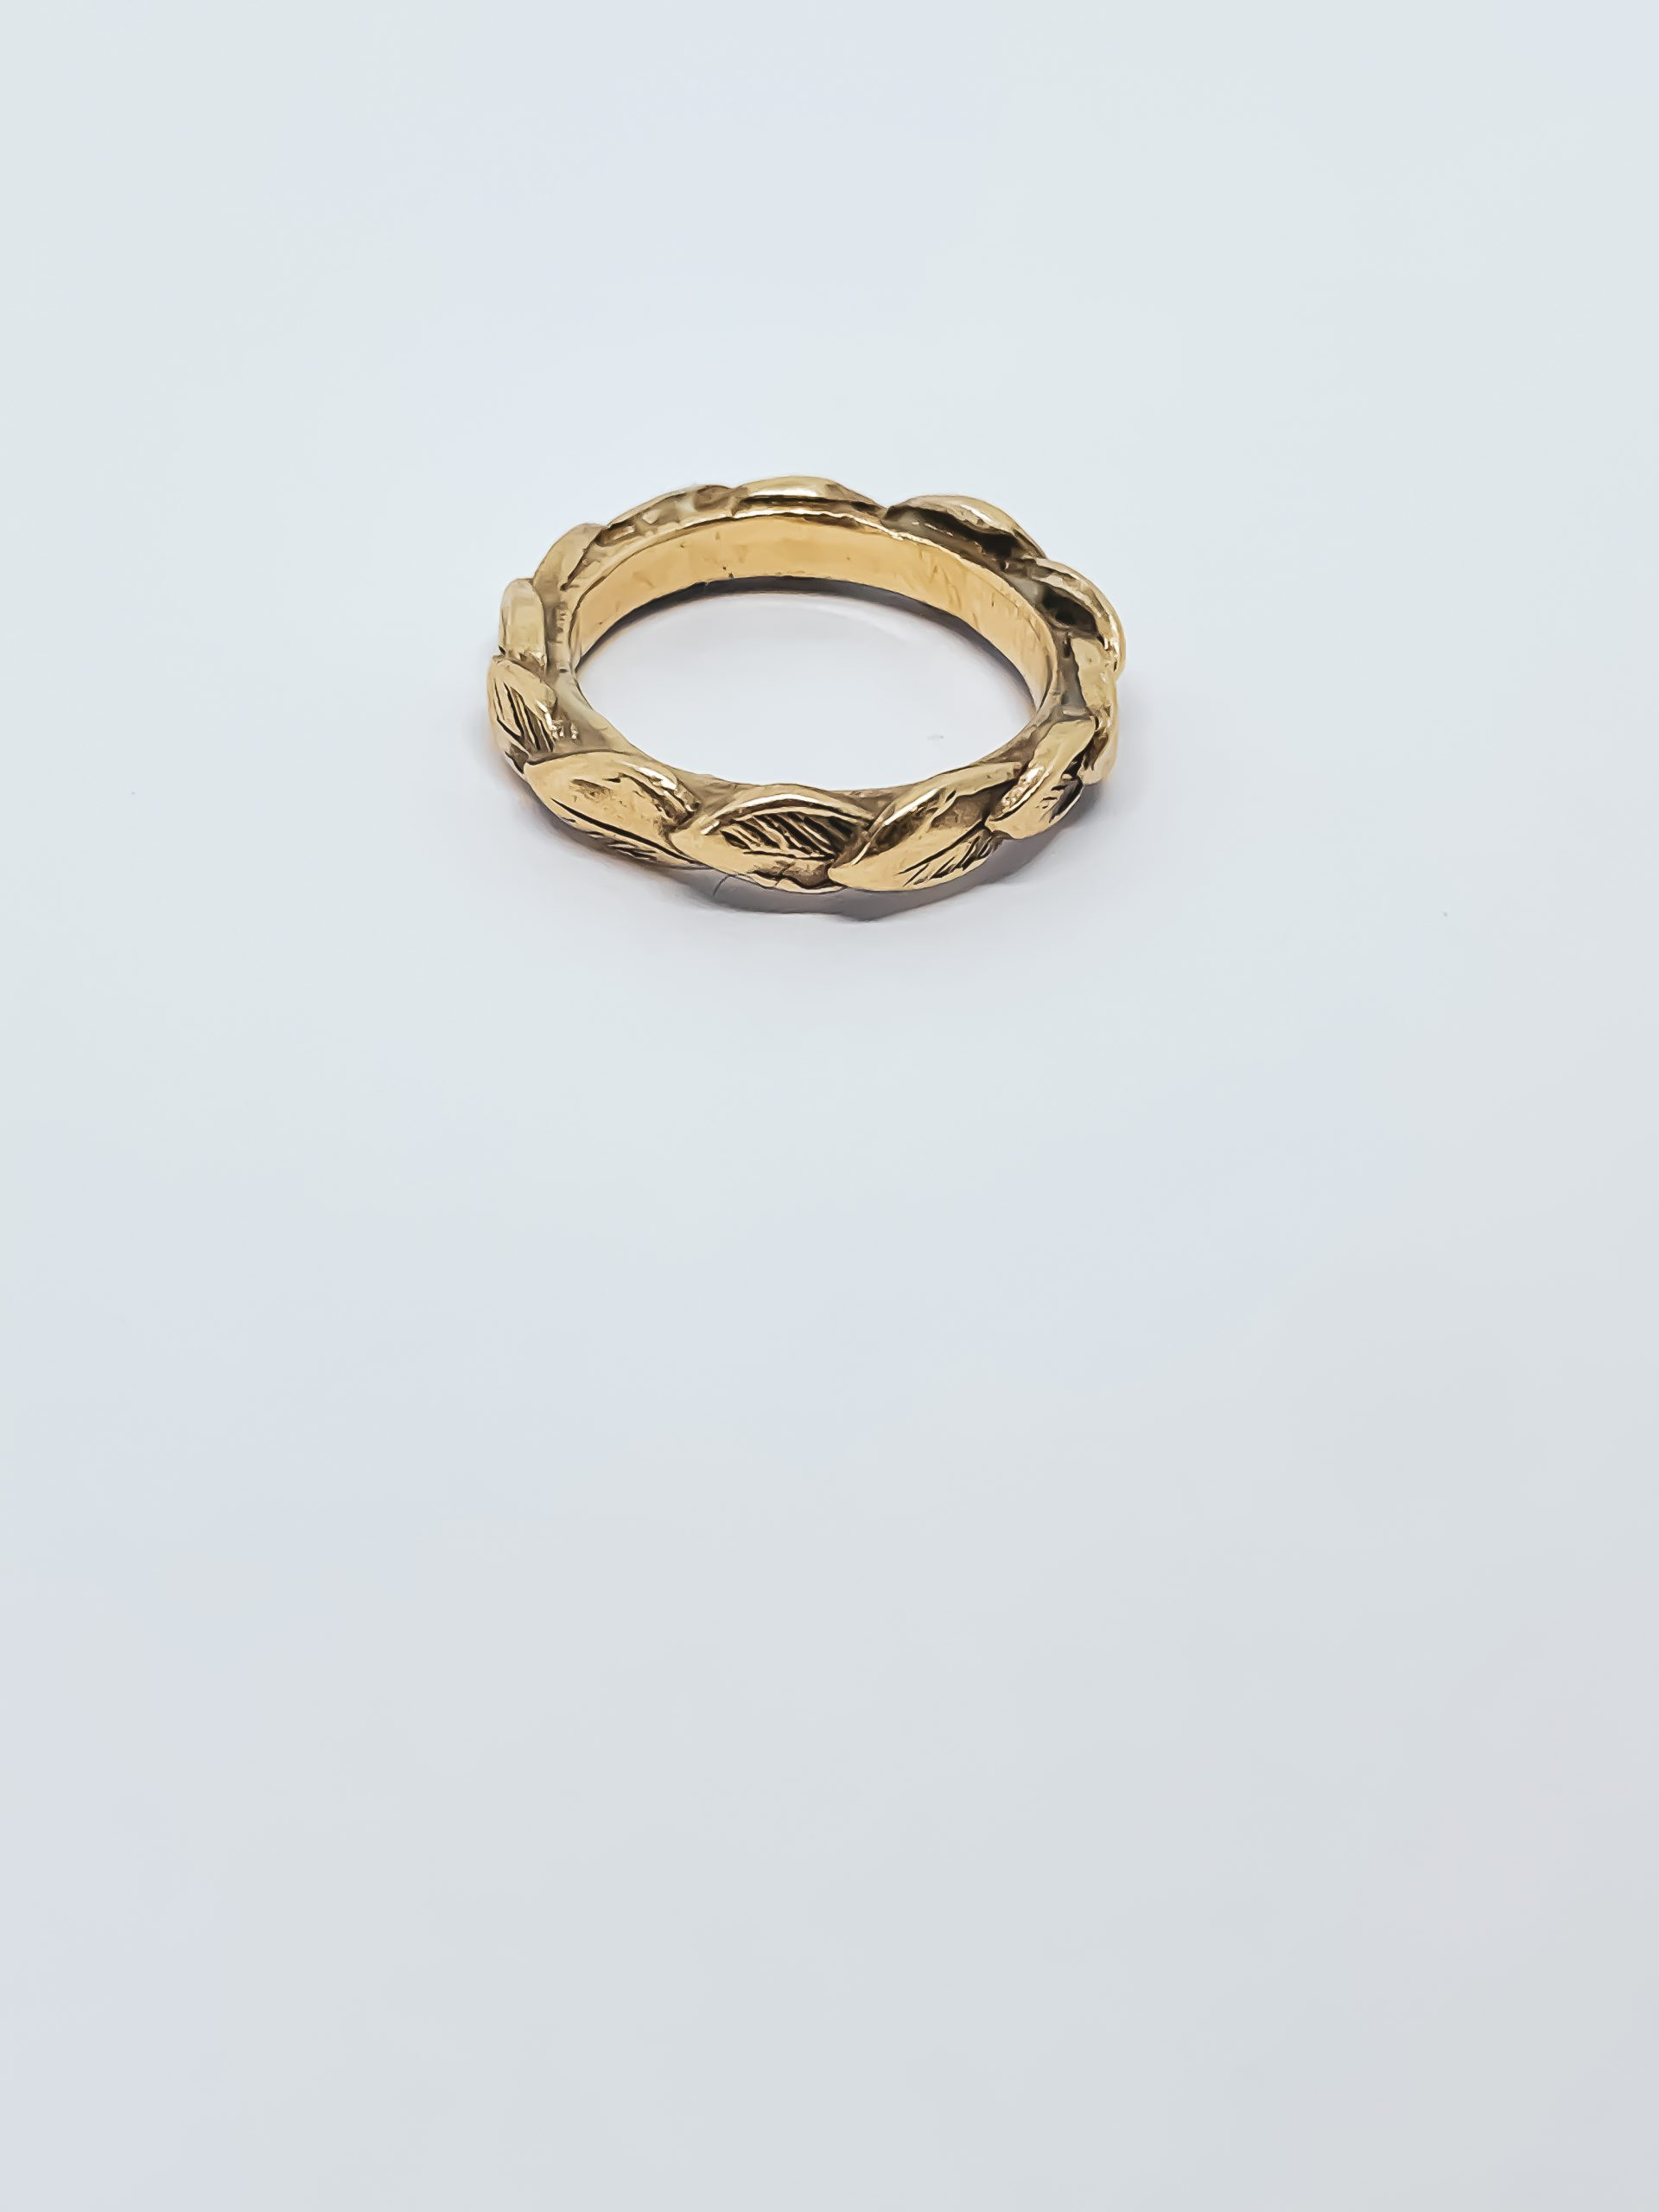 REVEALED – Single Leaf Stacking Ring in 9ct Gold